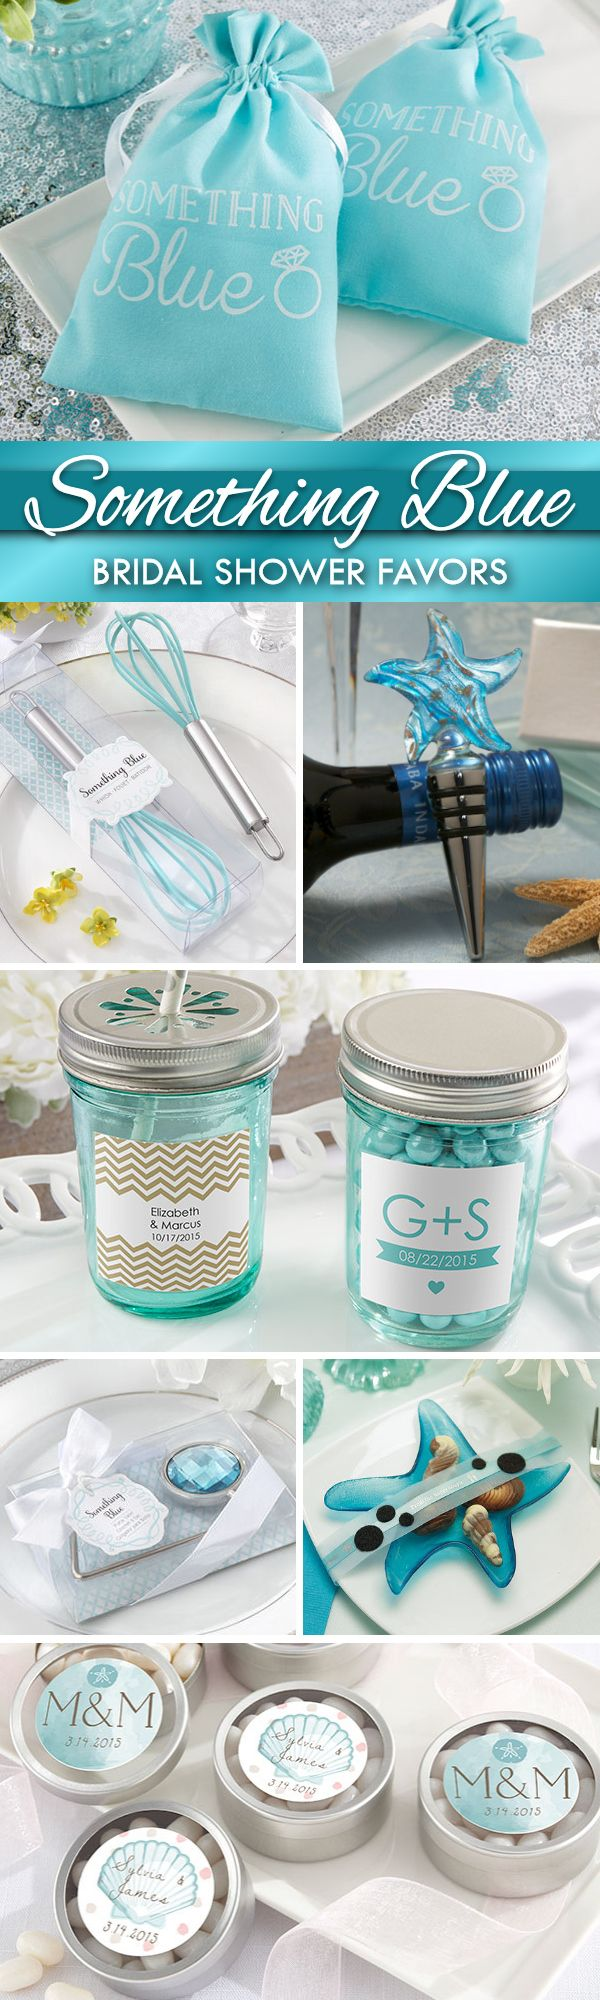 Throwing a Something Blue Bridal Shower?  Check out all of our fun blue-colored and ring-themed wedding shower favors that are perfect for the occasion!